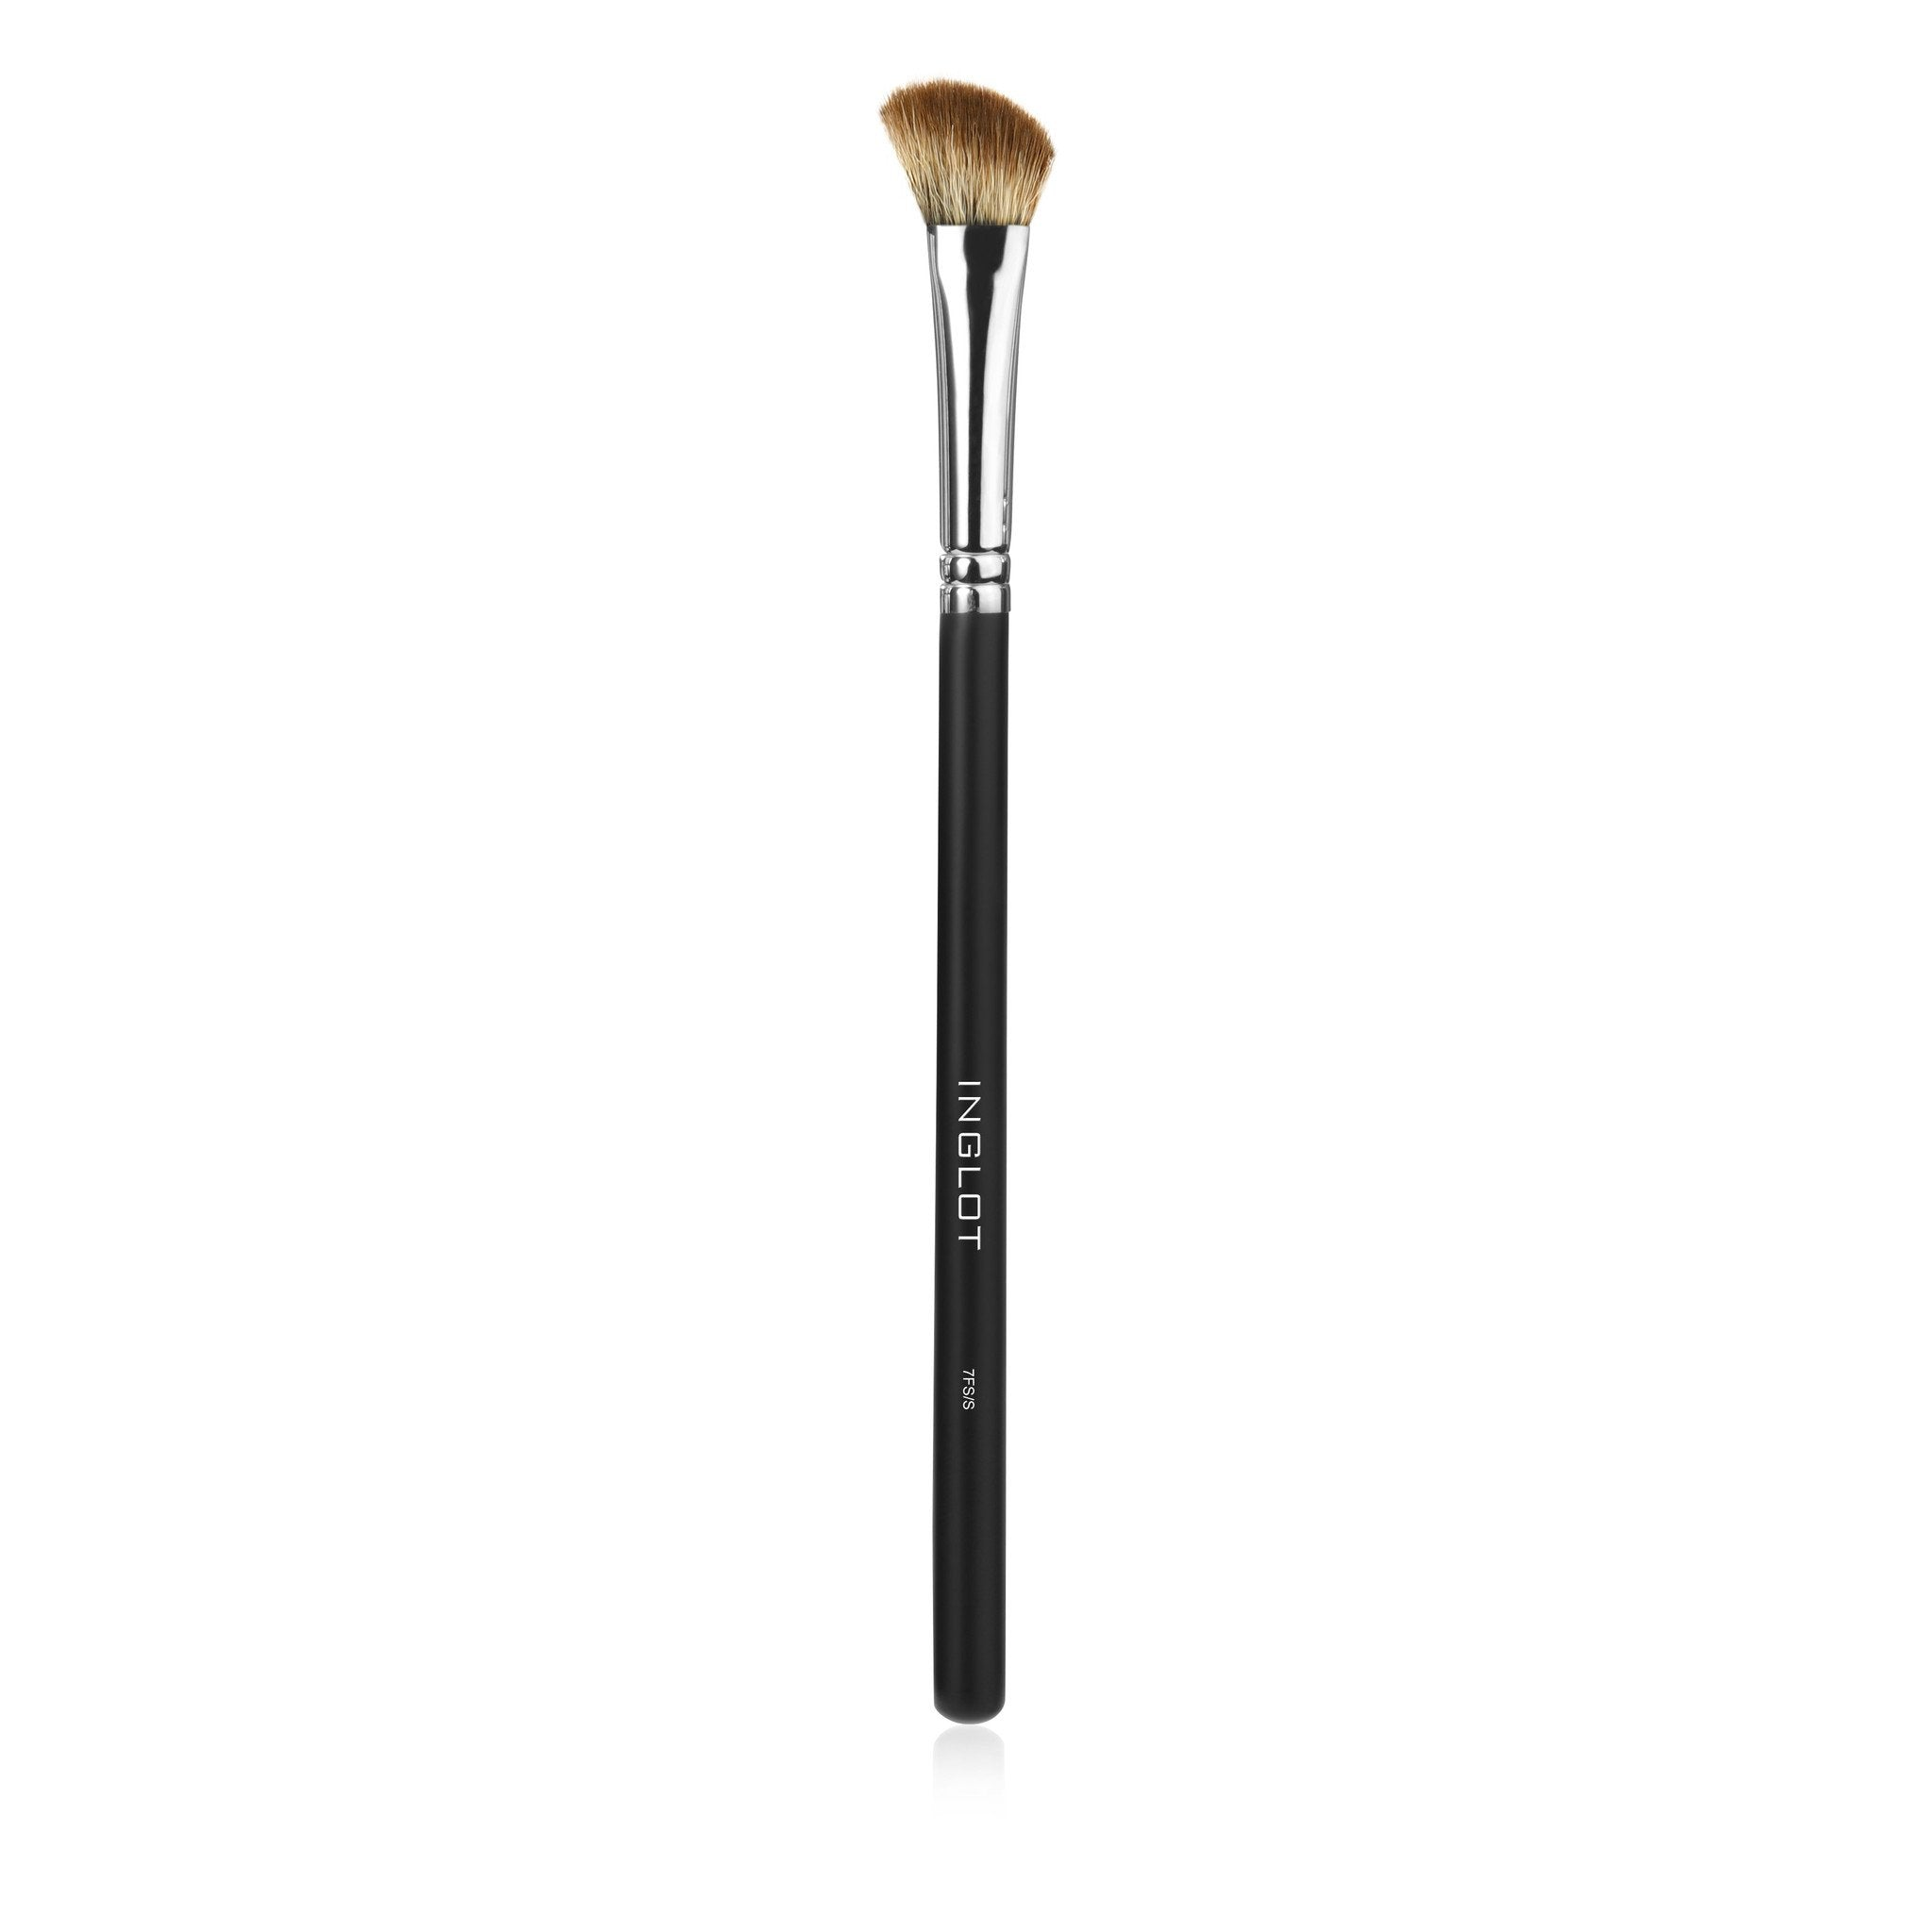 INGLOT - BRUSH 7FS/S -  - 2